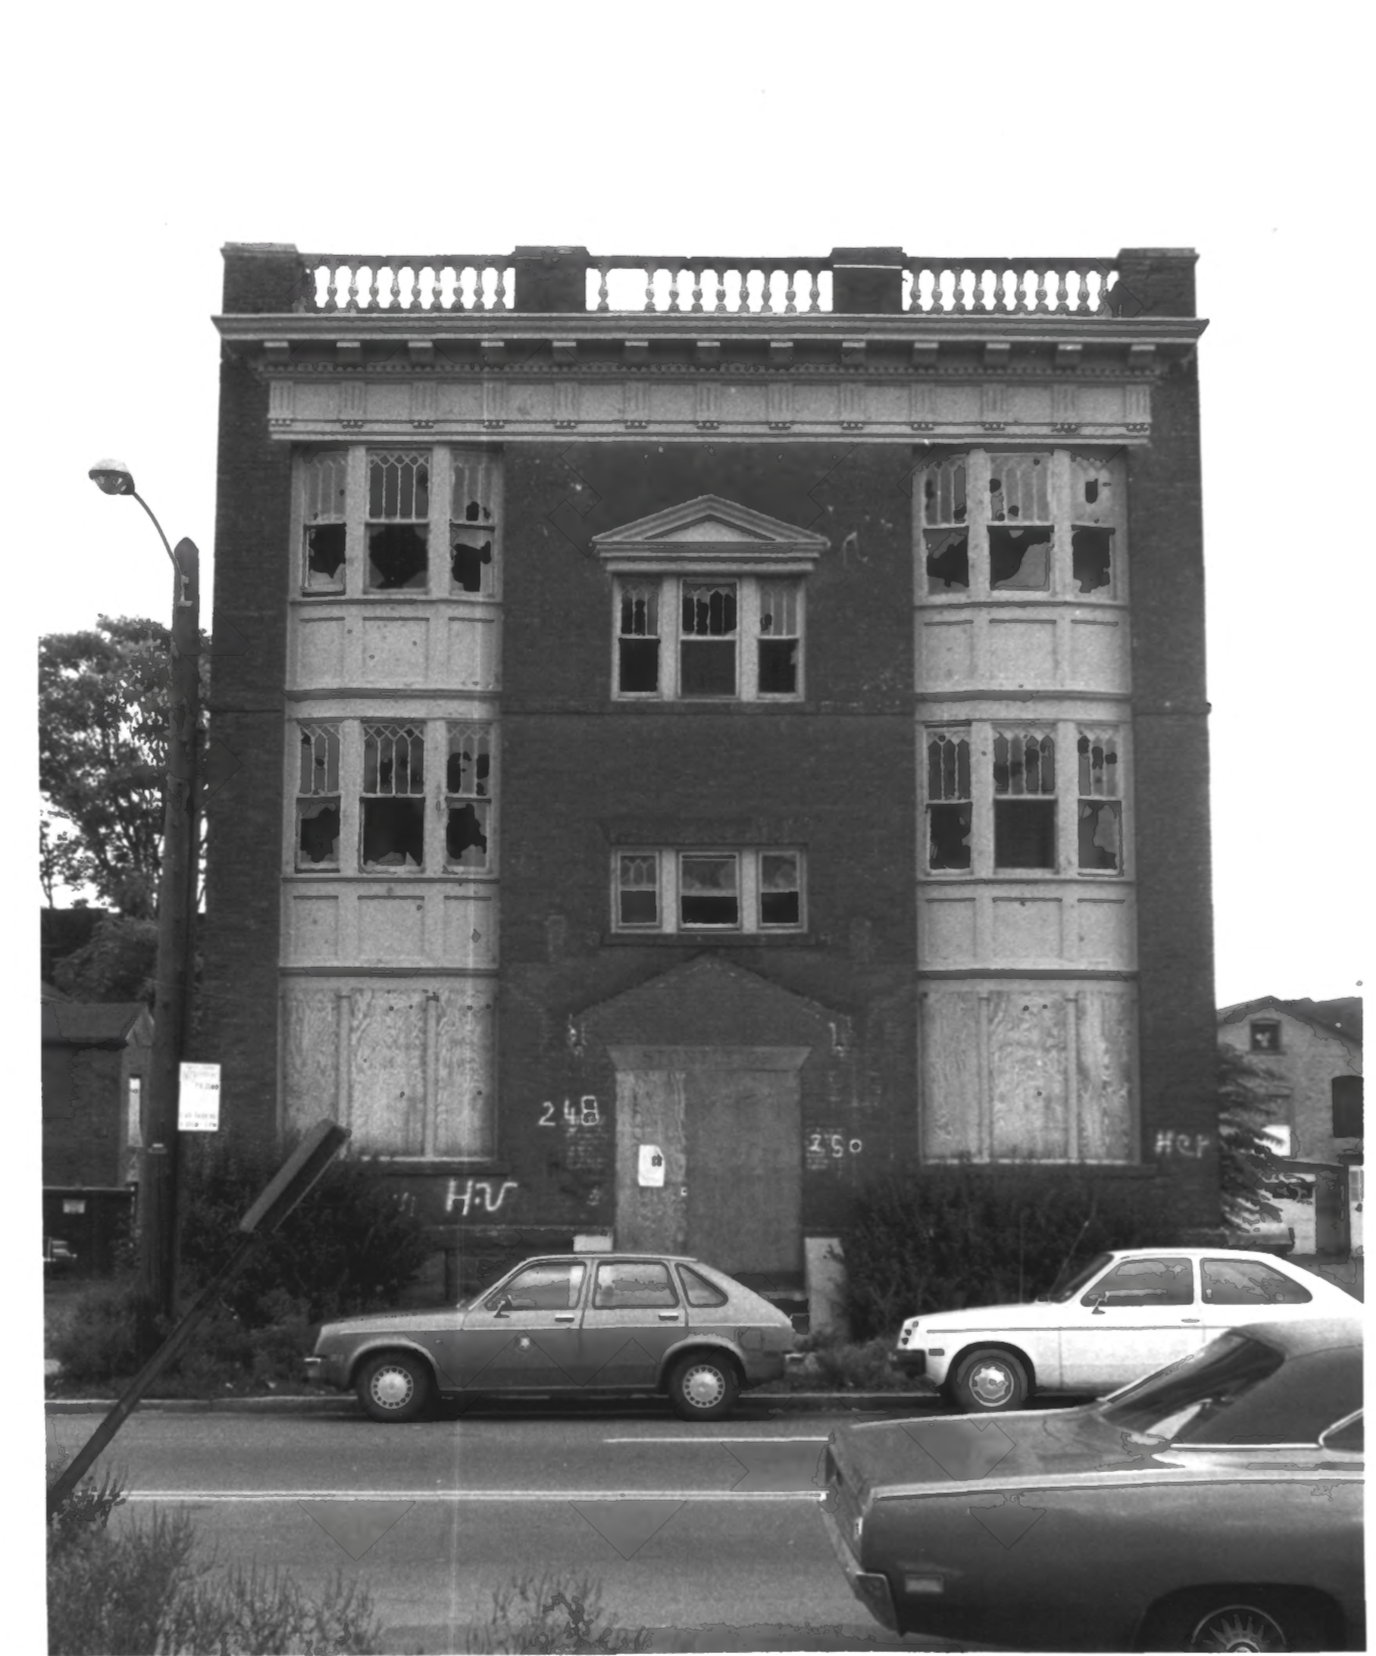 Front-facing photograph of the Stoneleigh Building, from the NRHP Archive Photographs by D. Ransom 10/81